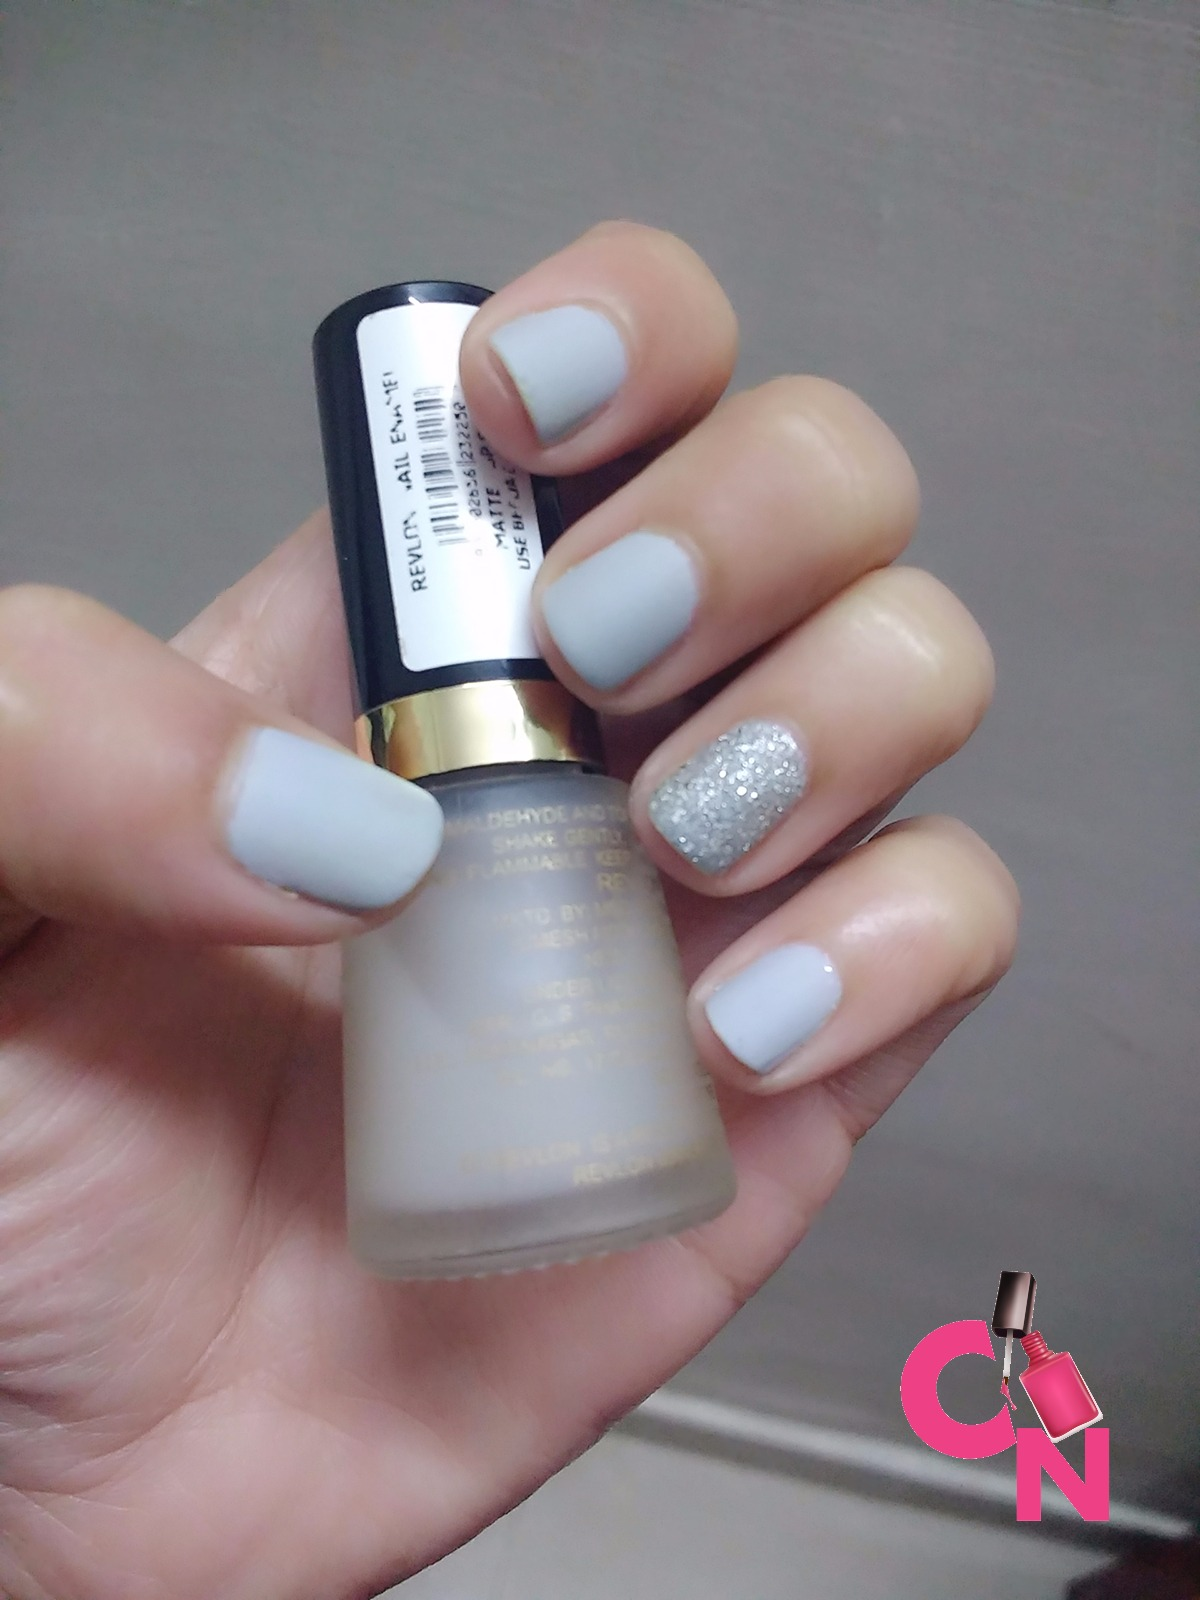 Of All The Matte Top Coats That I Have Tried This One Is Most Affordable With Good Quantity Bought It Along 3 Other Nail Polishes